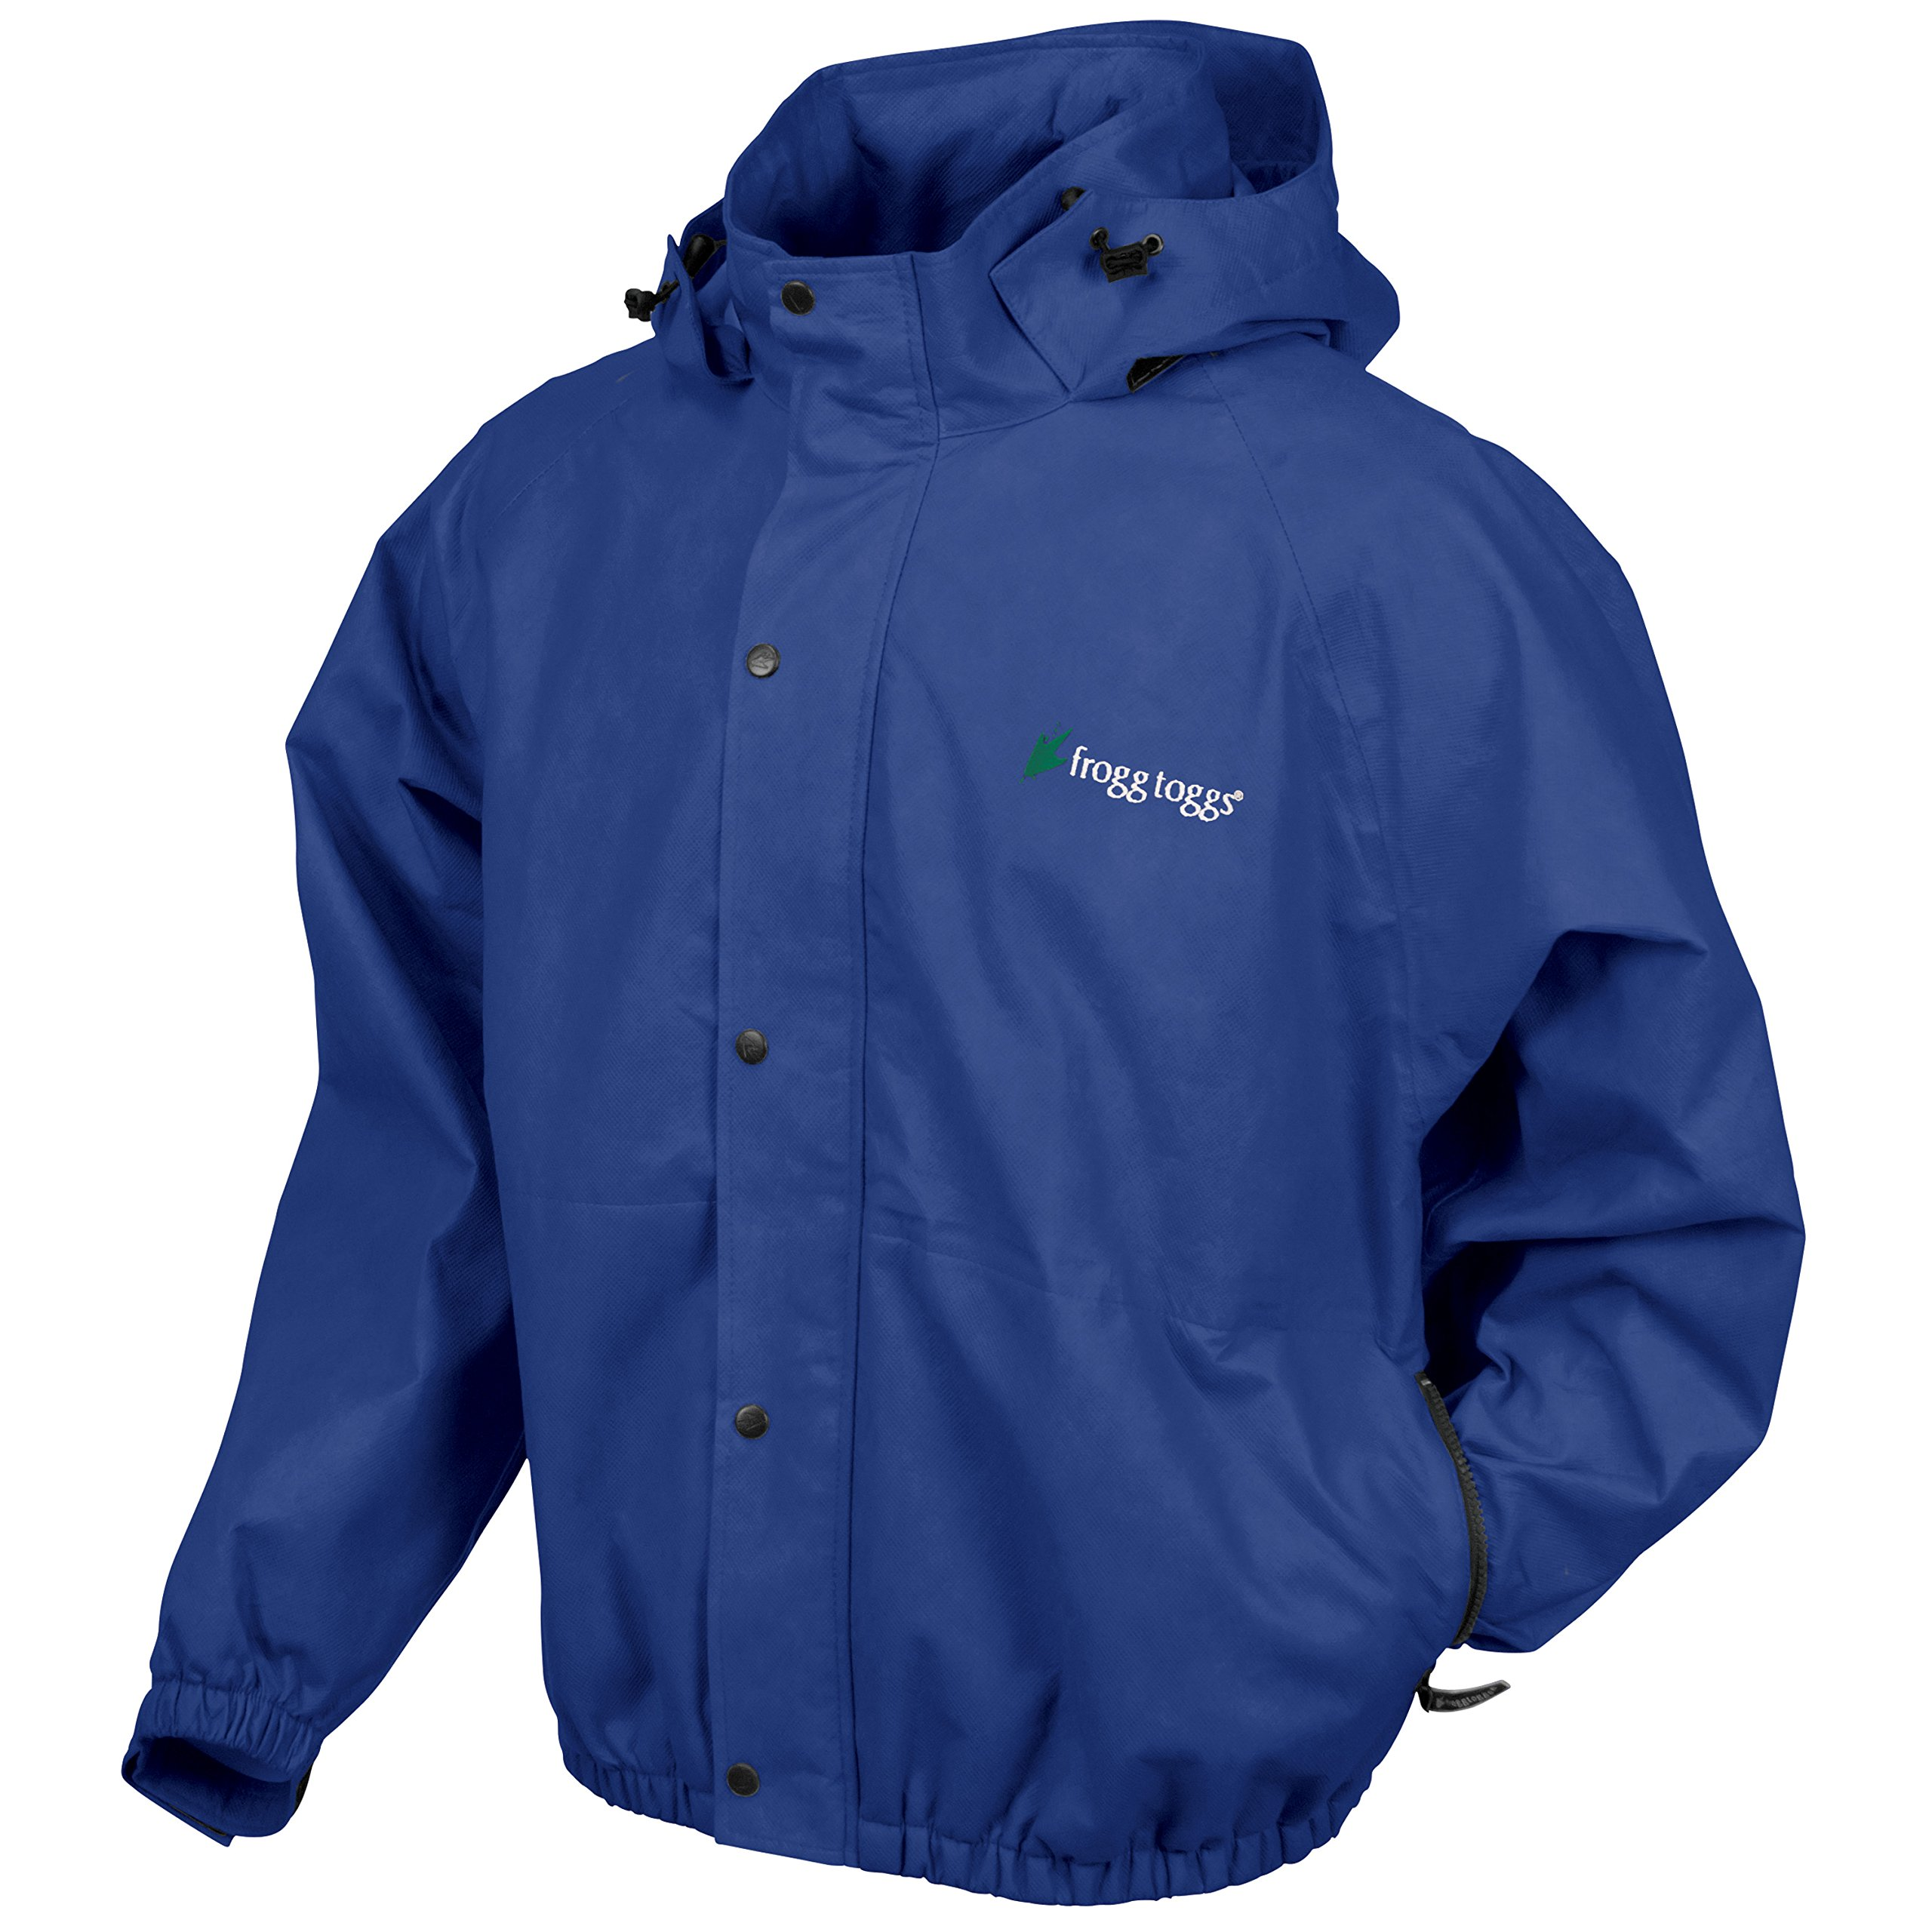 Frogg Toggs Classic Pro Action Rain Jacket with Pockets, Royal Blue, Size Small